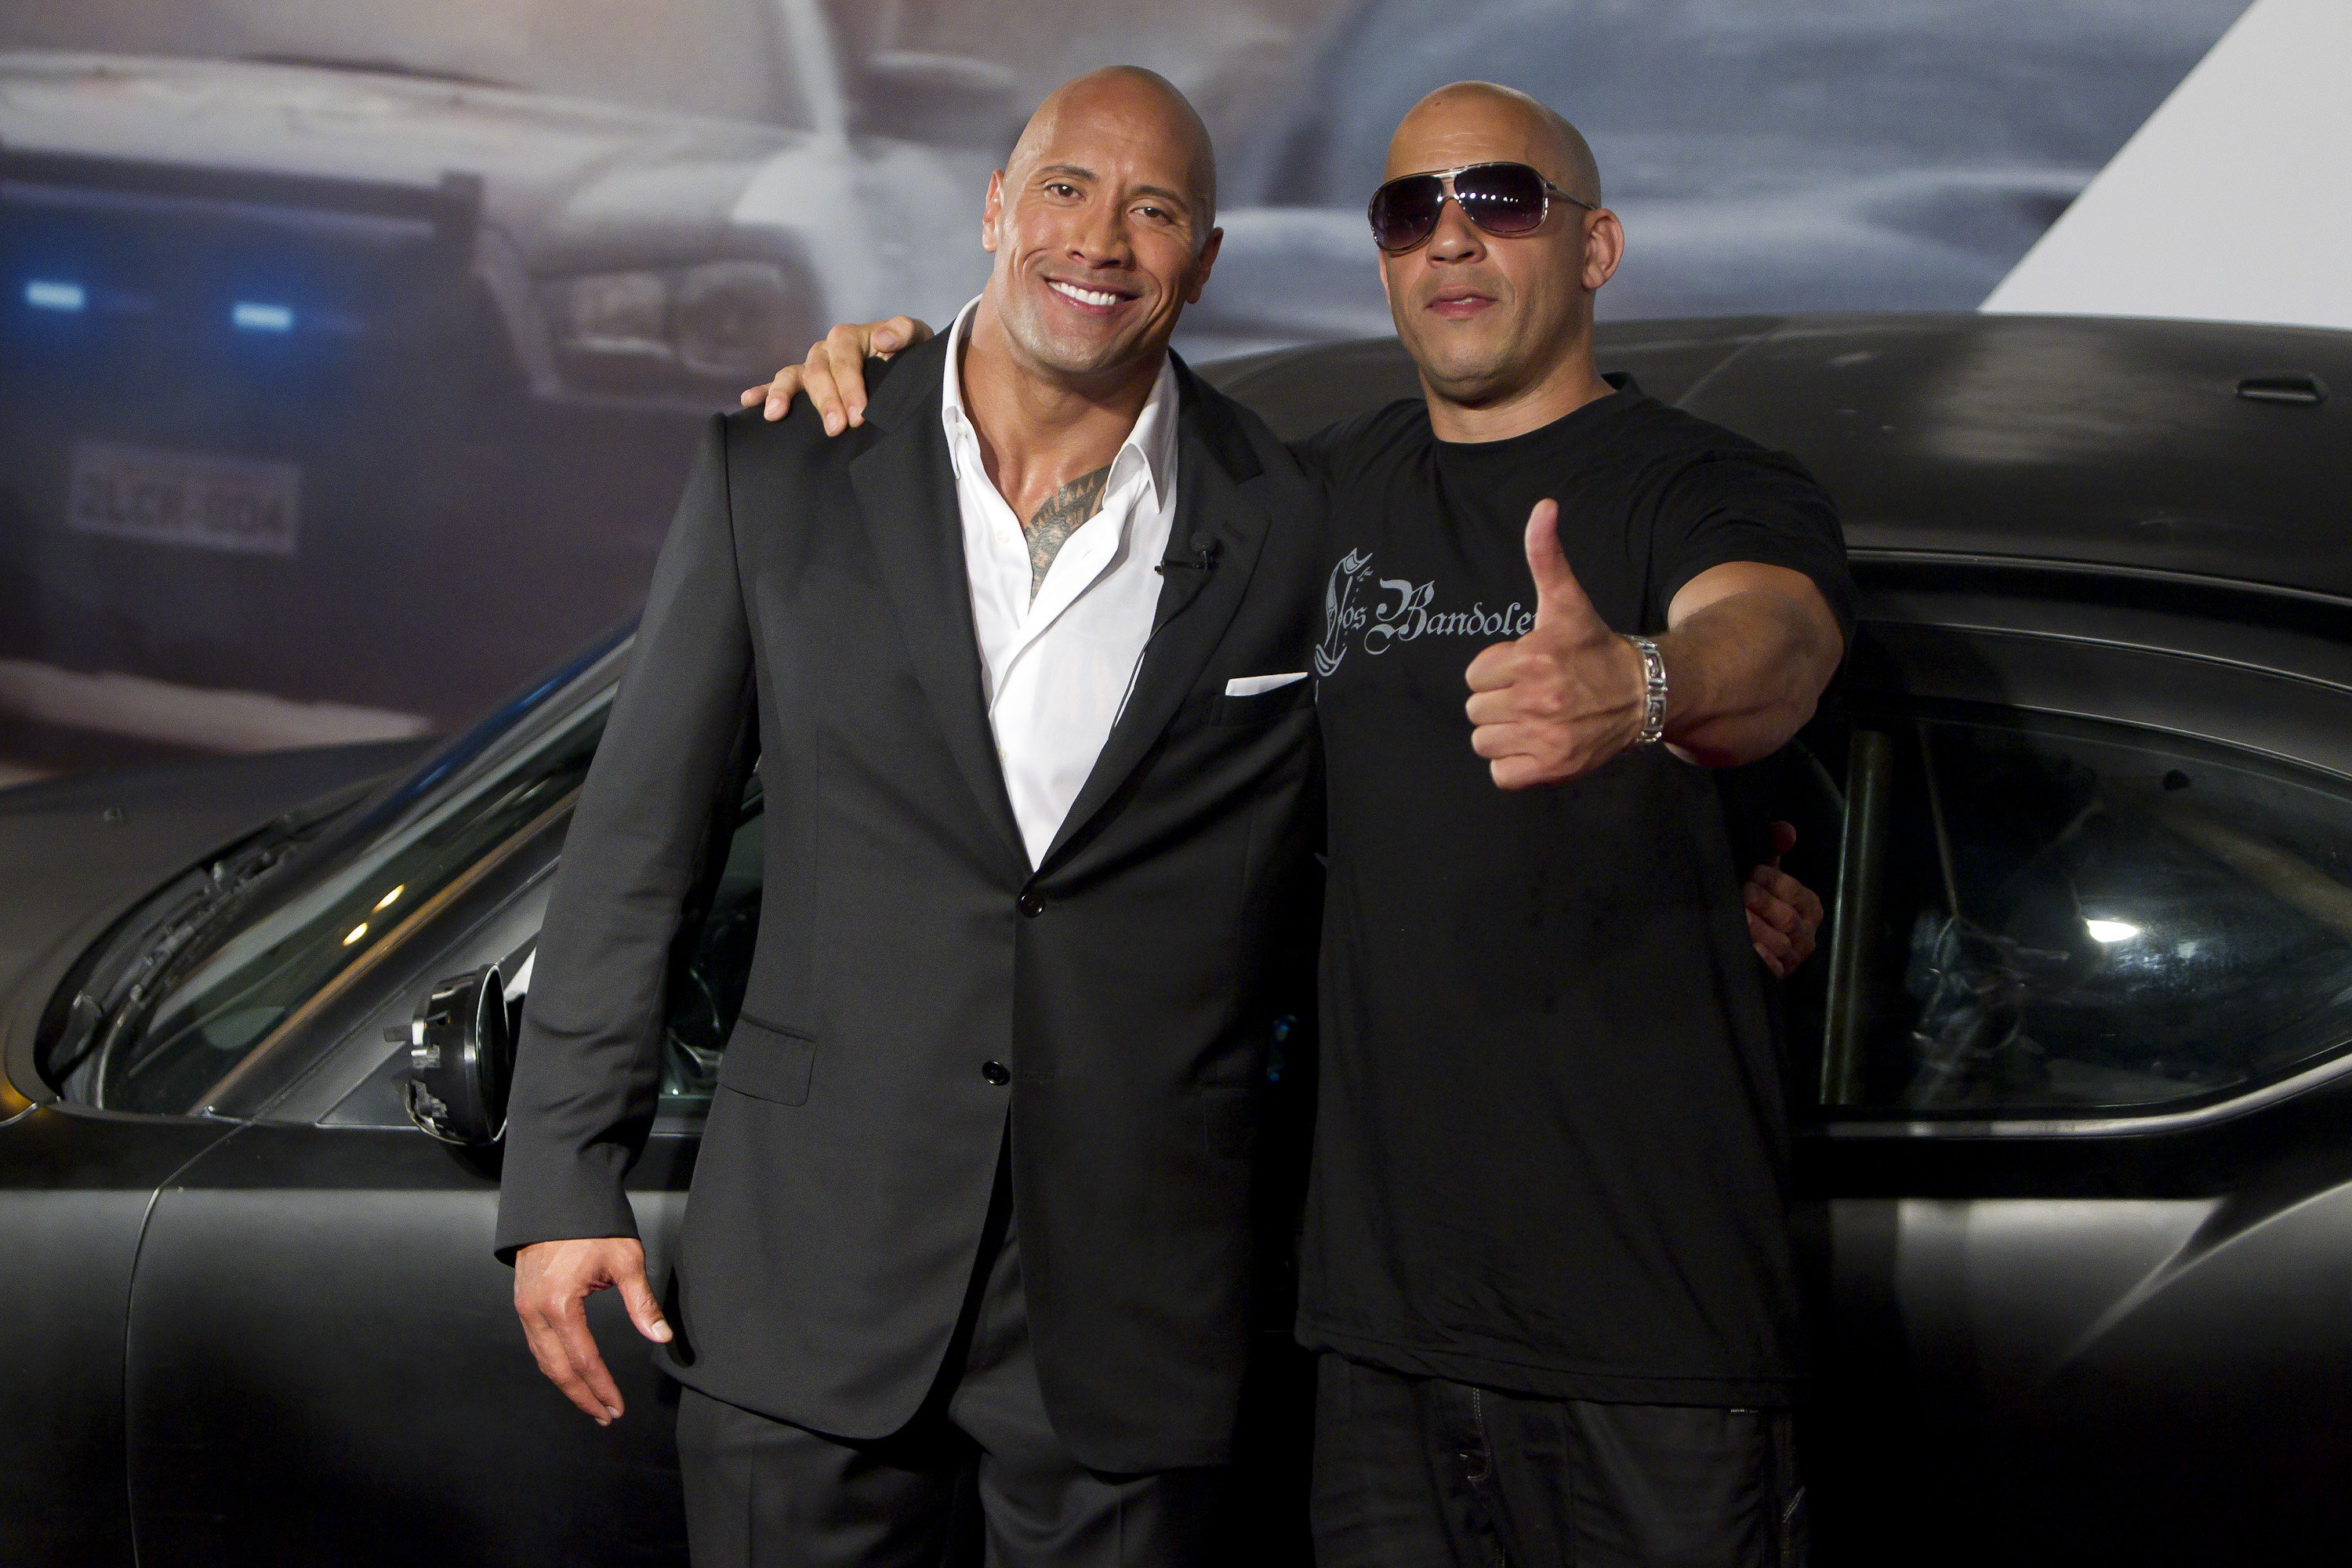 Dwayne Johnson (The Rock) and Vin Diesel (R) pose for photographers during the premiere of the movie  Fast and Furious 5  at Cinepolis Lagoon on April 15, 2011 in Rio de Janeiro, Brazil.